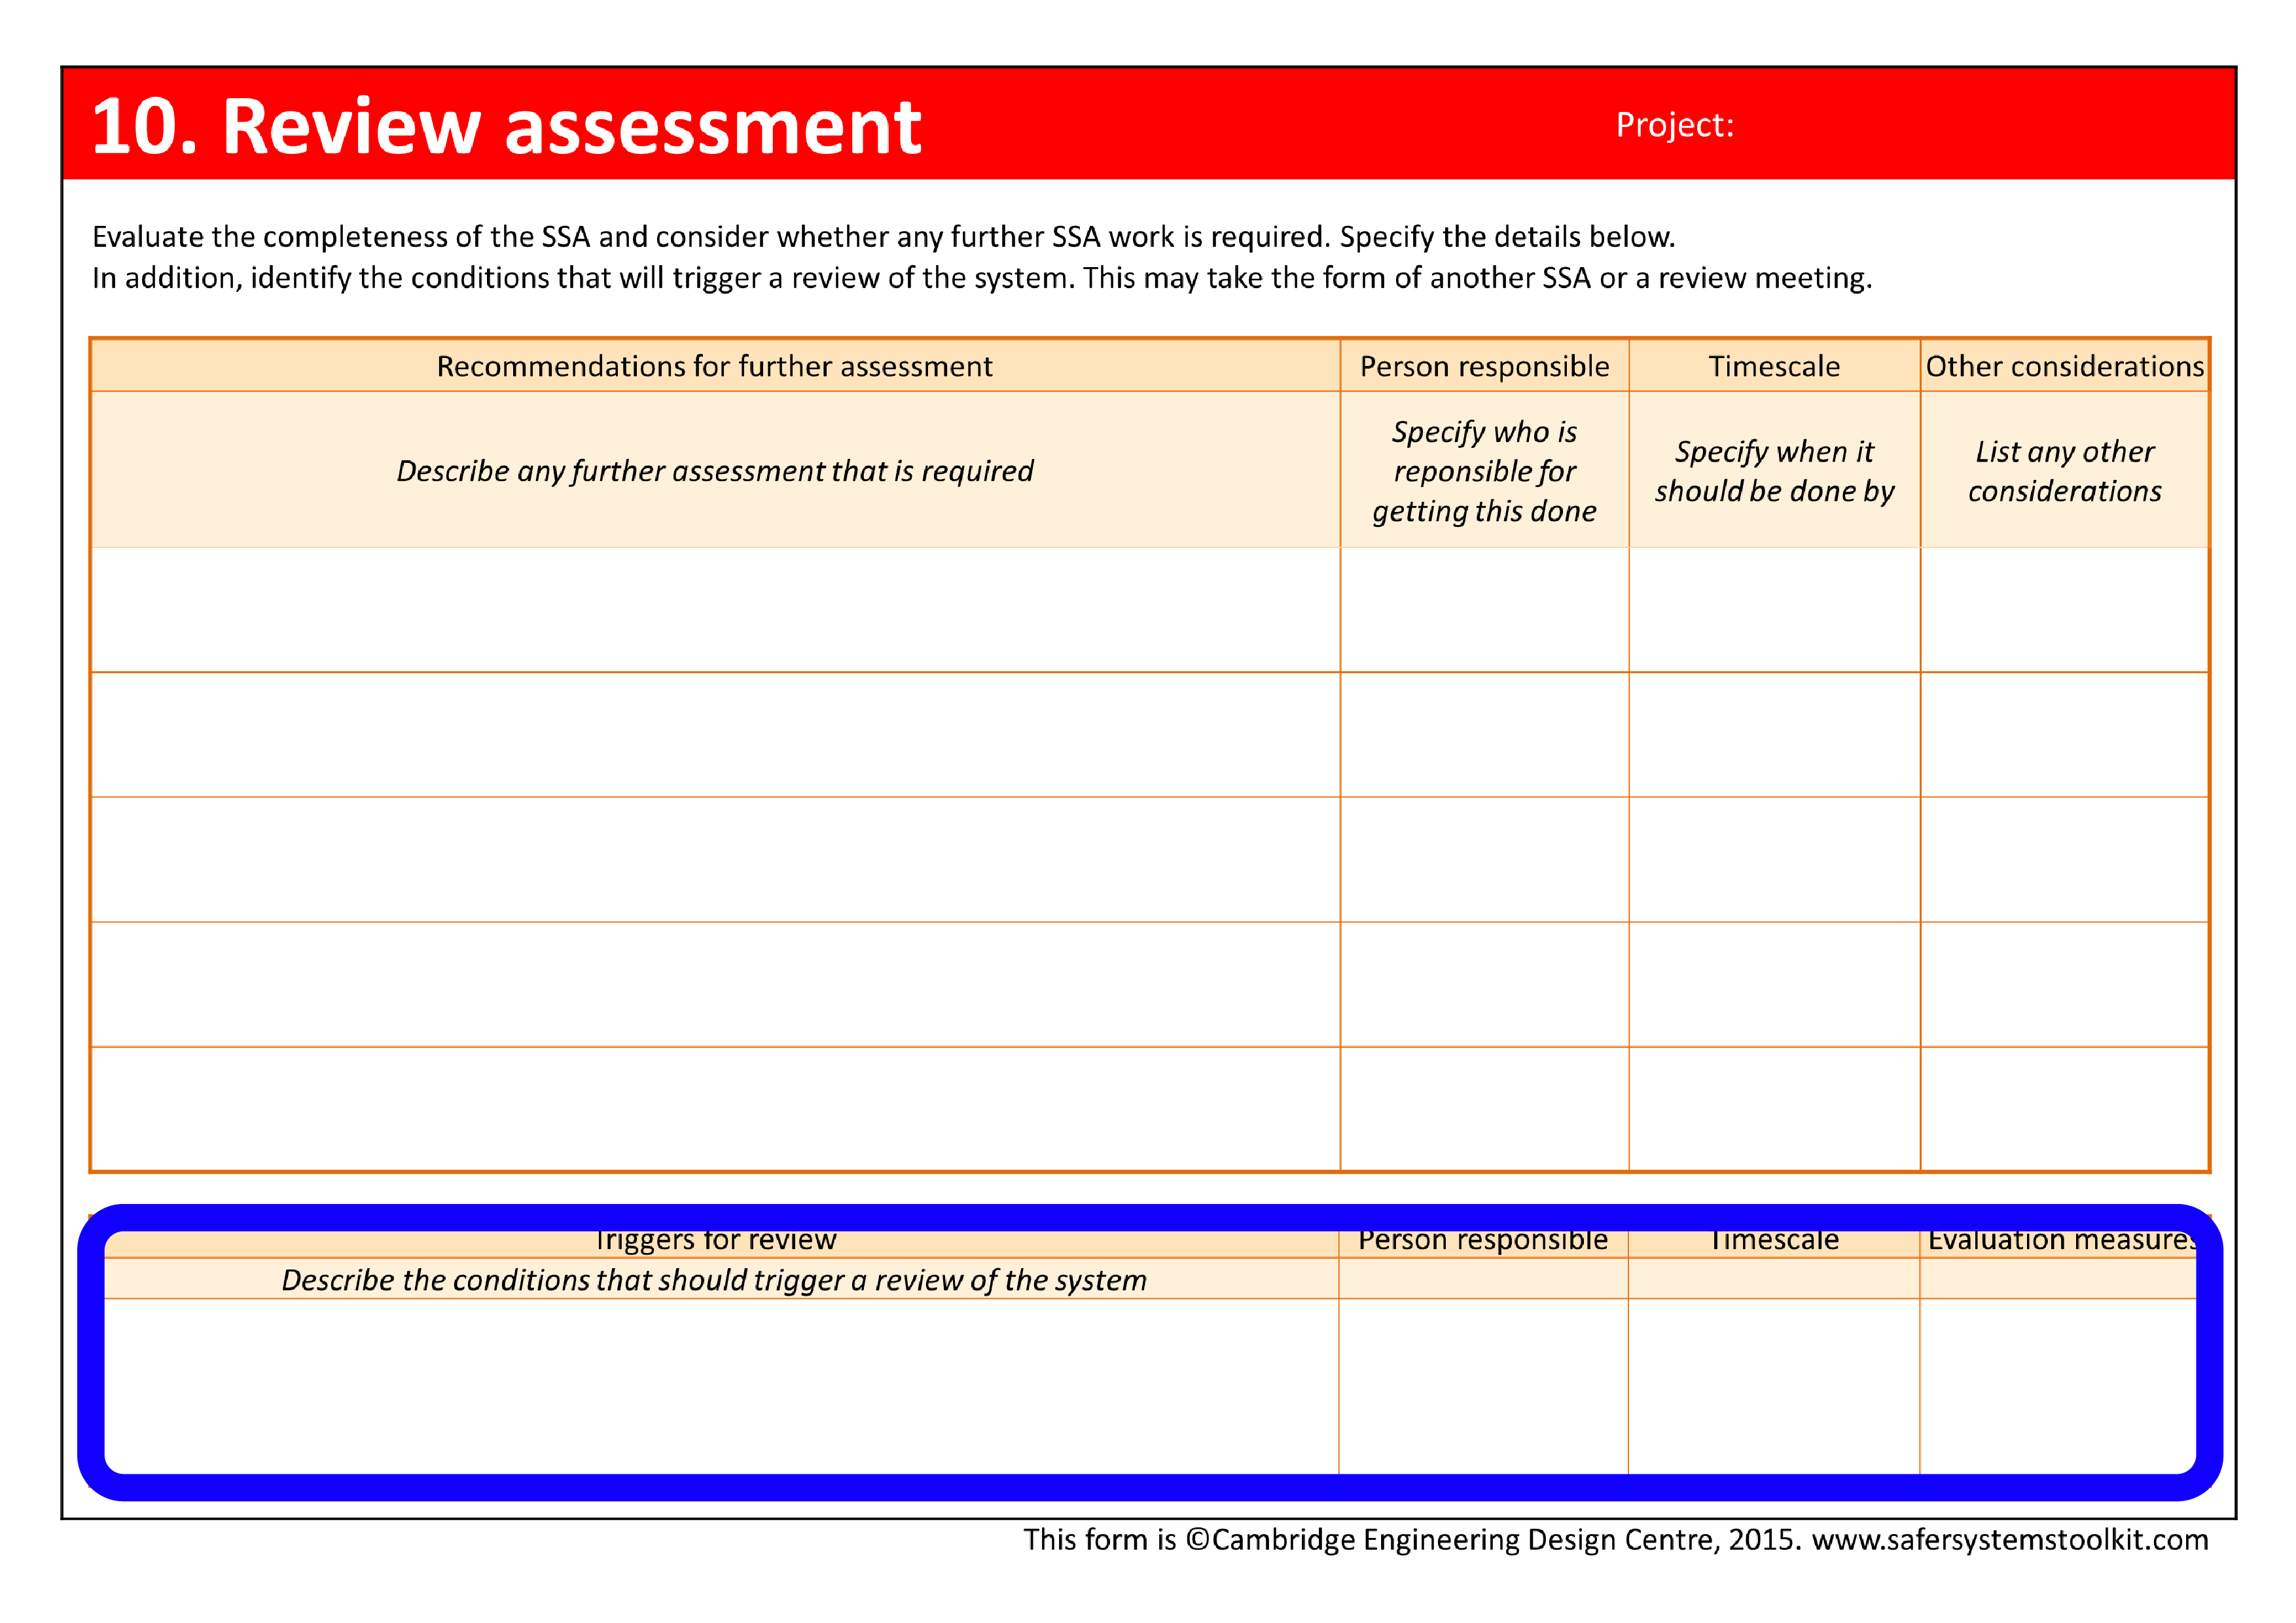 Screenshot of Review assessment page of the assessment form